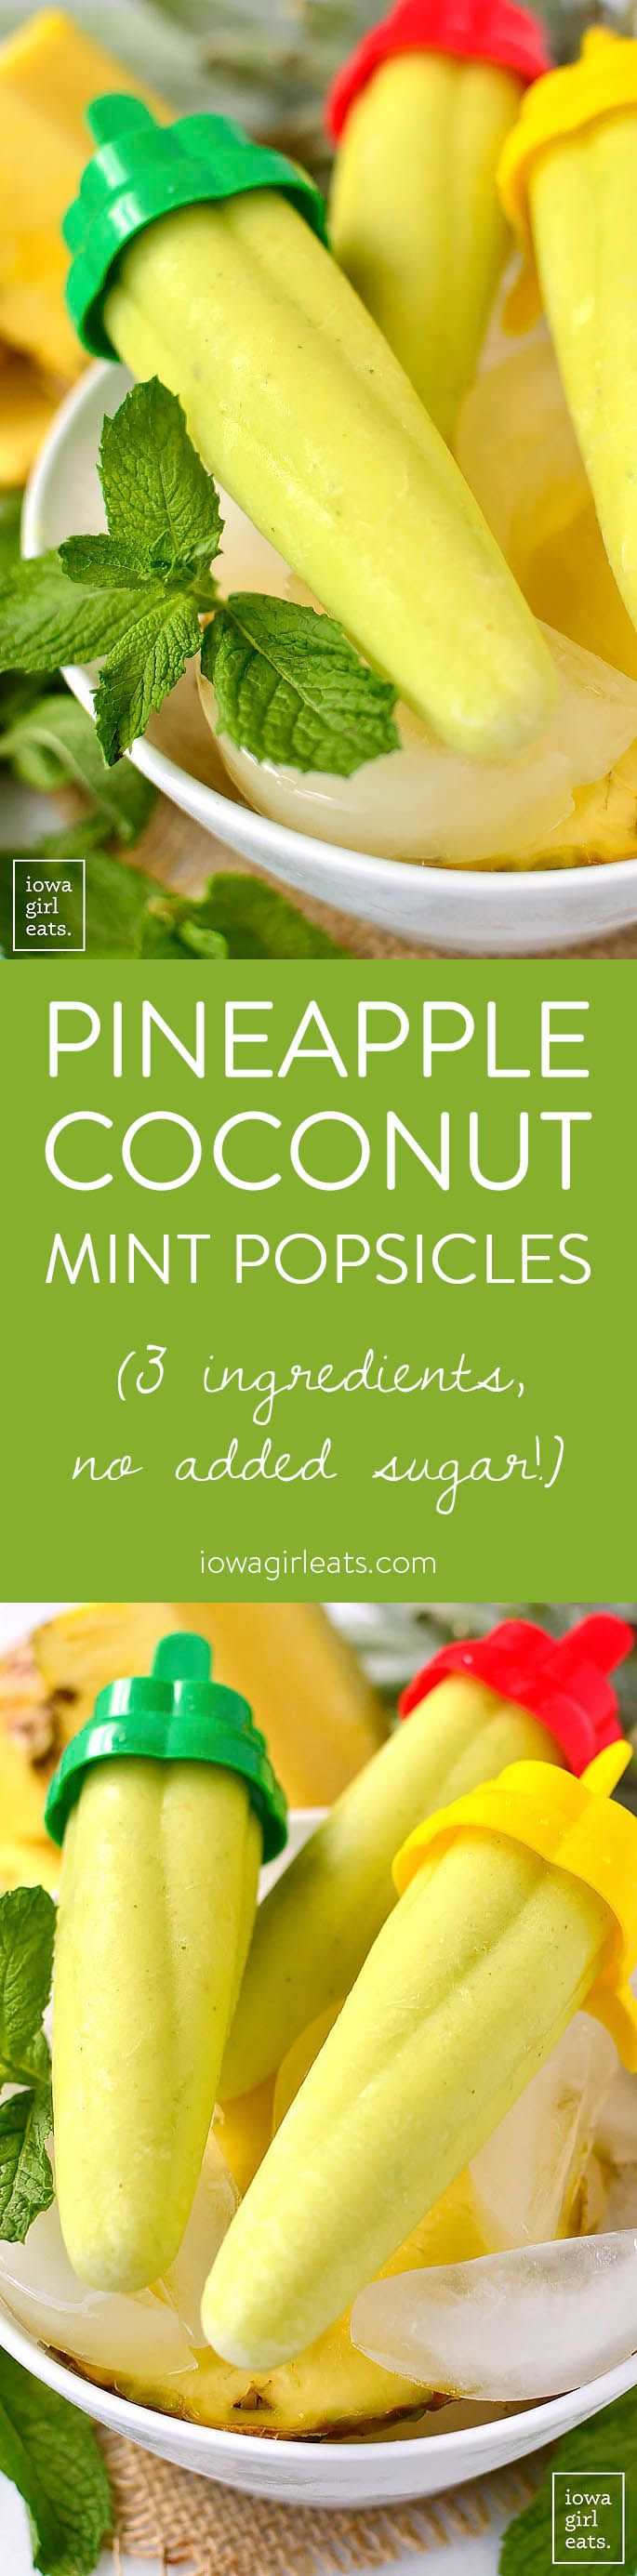 Pineapple Coconut Mint Popsicles are a 3-ingredient, sugar-free popsicle recipe for the hottest of summer days! | iowagirleats.com